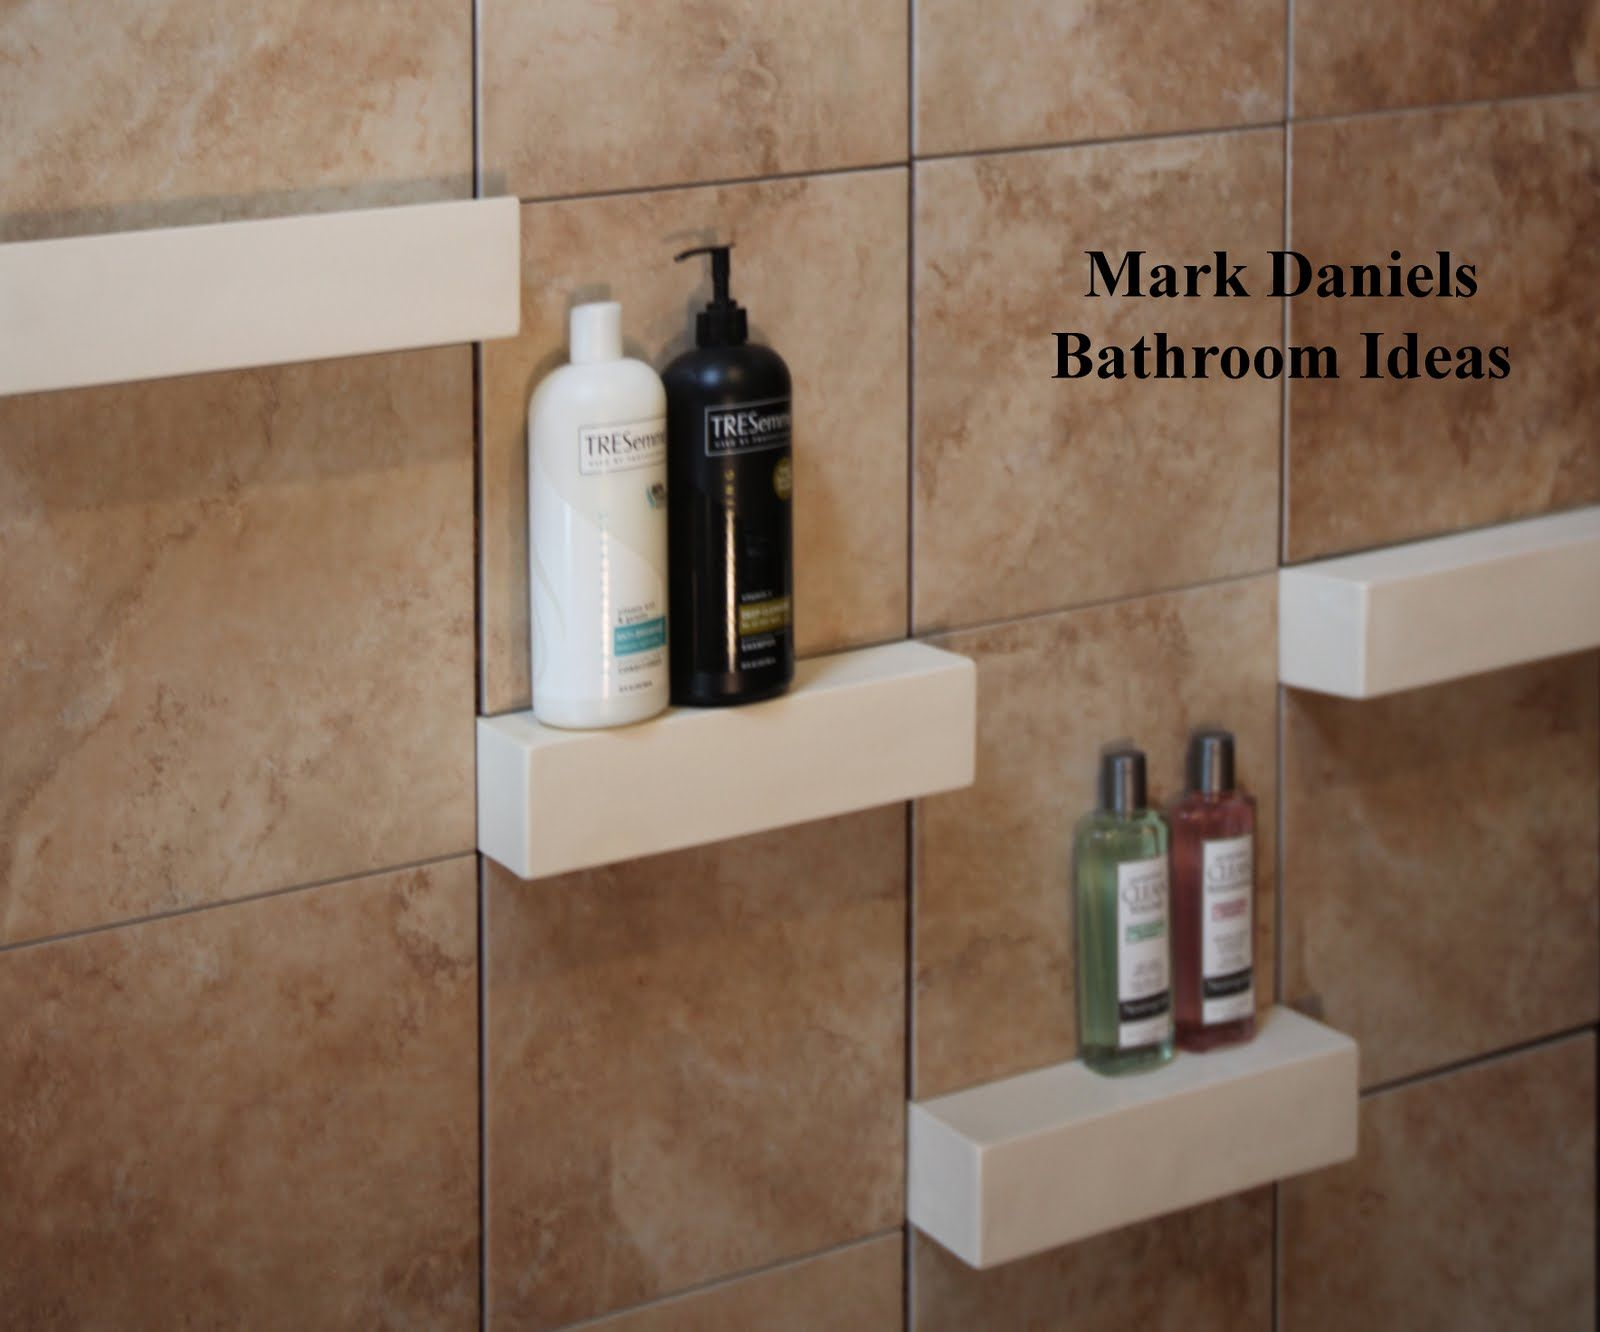 Bathroom Remodeling Designs Ideas bathroom remodeling design ideas tile shower shelves | renovation